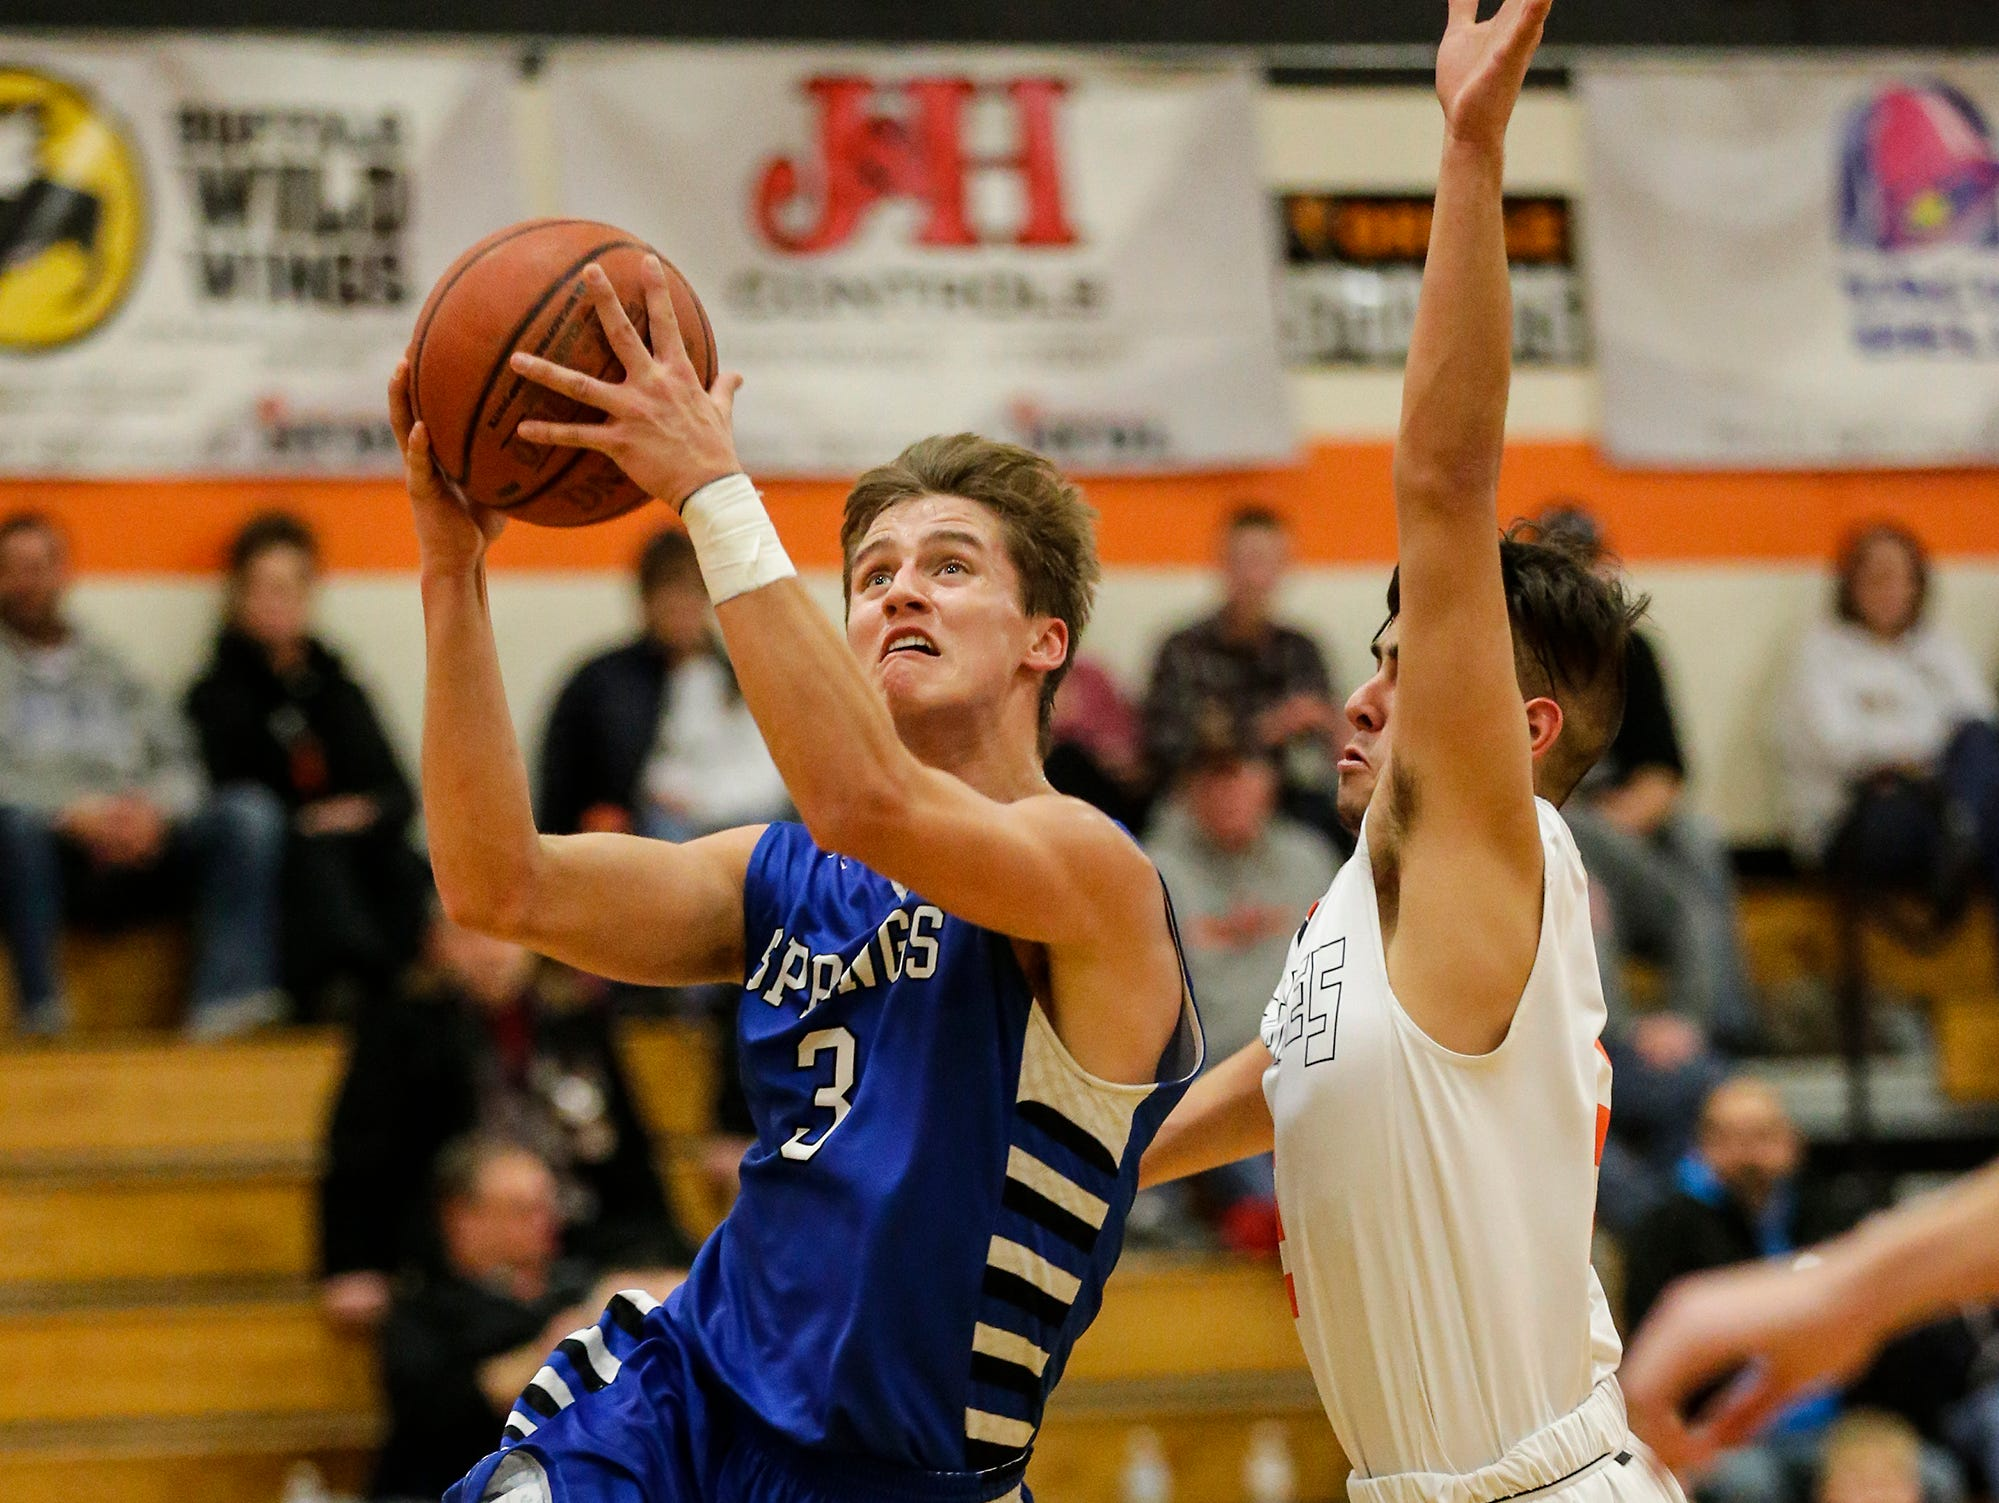 St. Mary's Springs Academy's boys basketball's Mitch Waechter goes up for a basket against North Fond du Lac High School's Tony Reyes during their game Friday, December 7, 2018 in North Fond du Lac, Wisconsin. Doug Raflik/USA TODAY NETWORK-Wisconsin